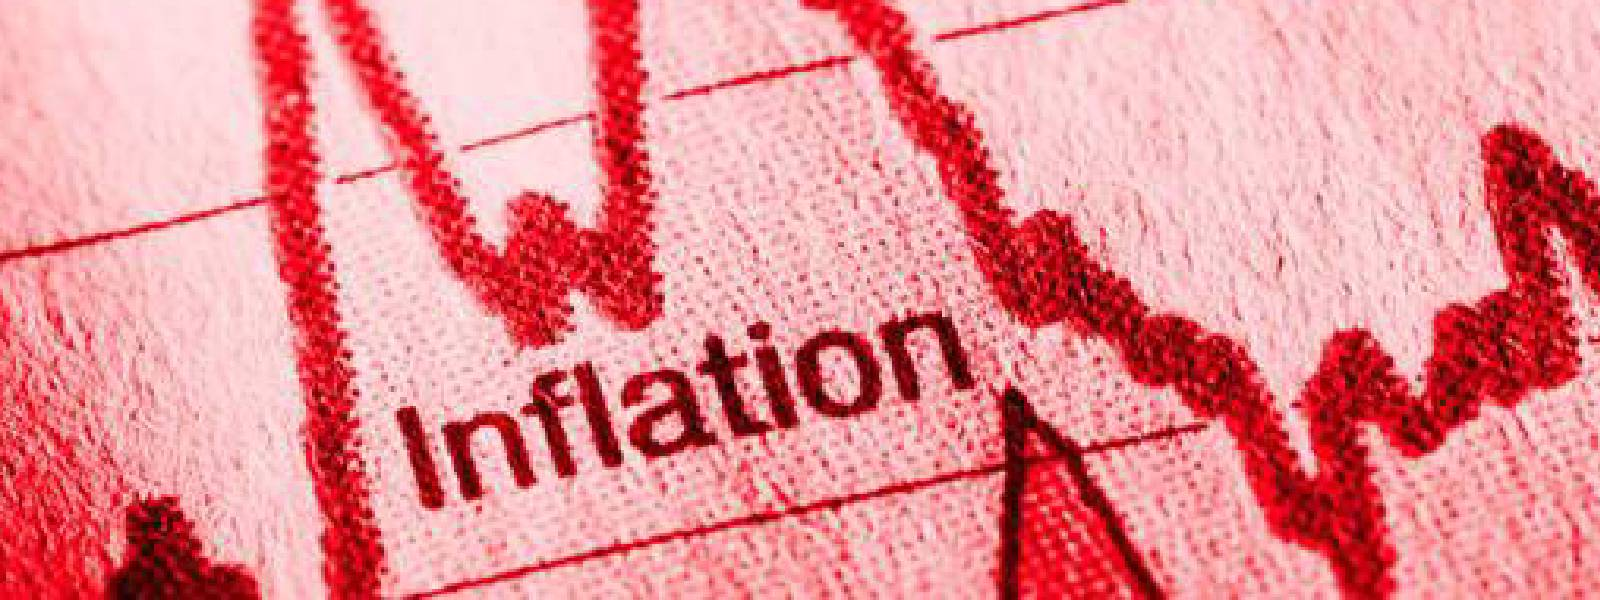 Sri Lanka's headline inflation dips in April